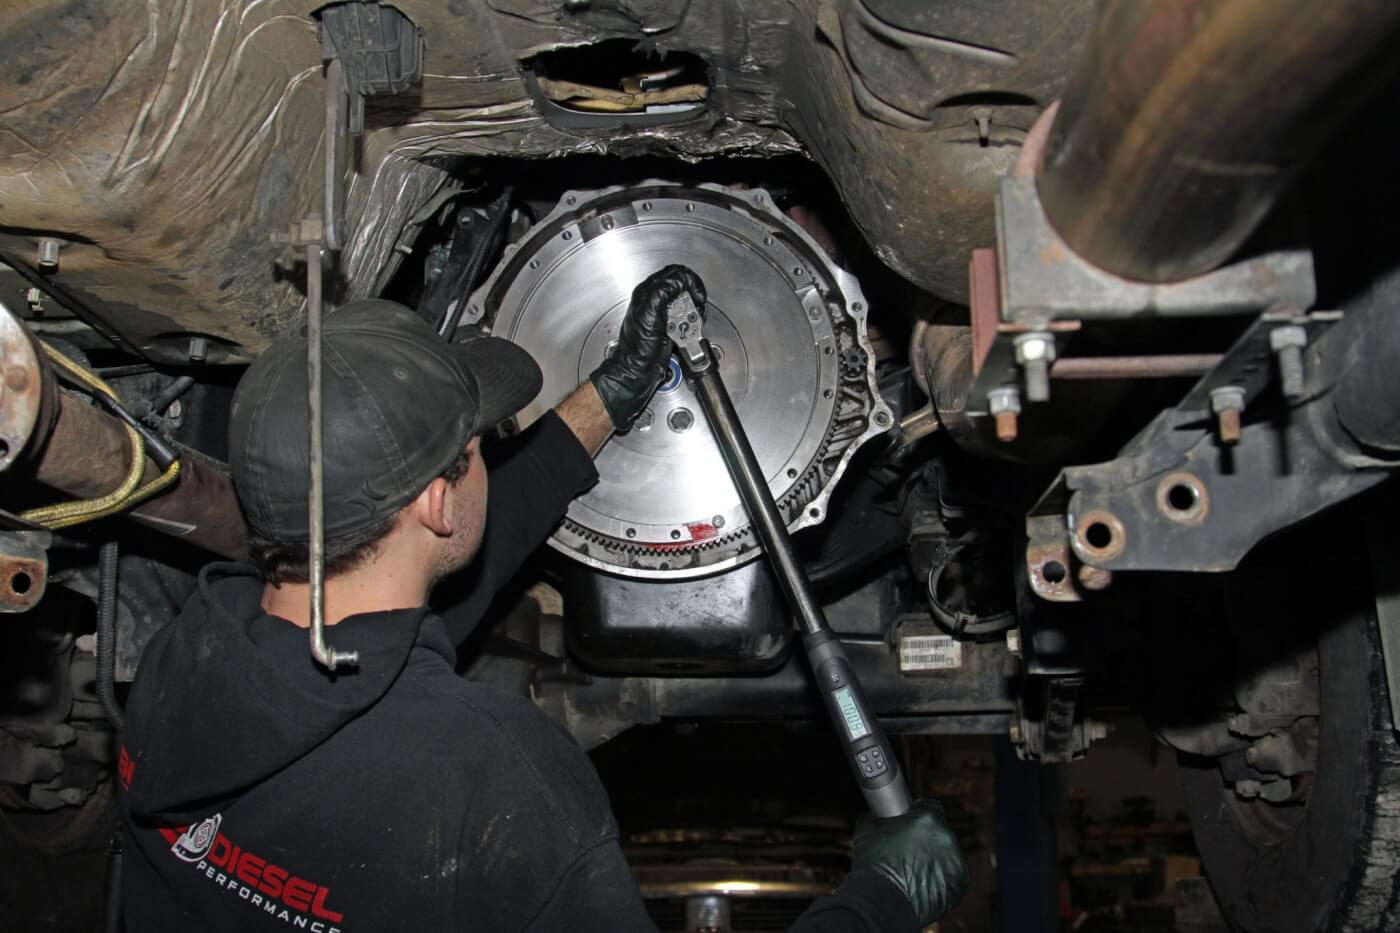 14. Then, he installed the new flywheel using red thread locking compound on the mounting bolts and torqueing them to 100 ft-lbs as directed in the SBC installation manual.